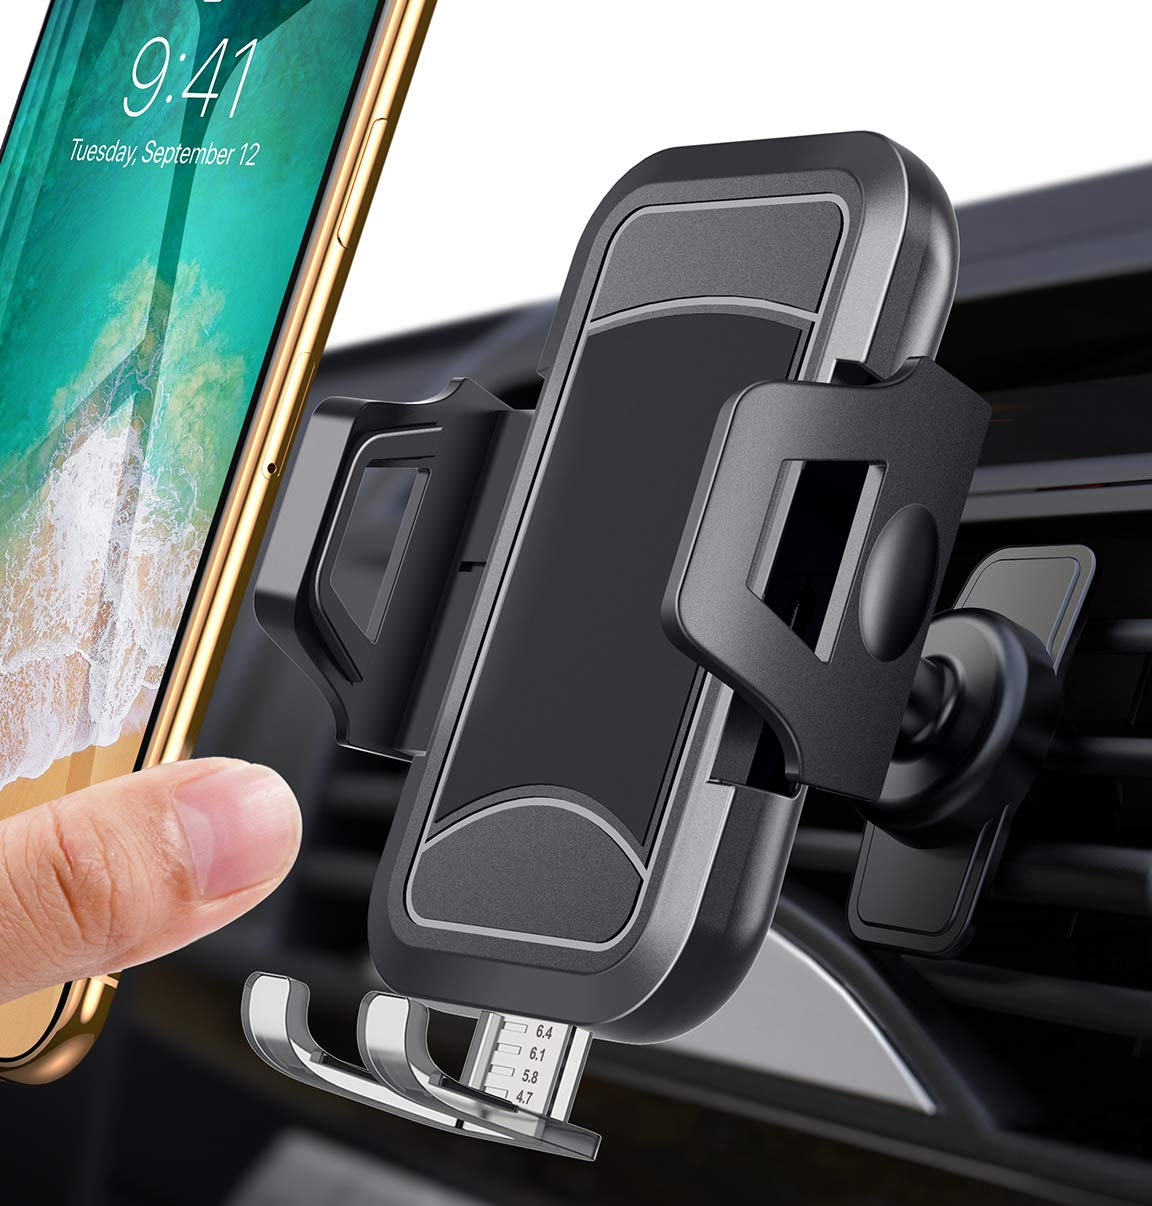 itaomi [German Tech Guarantee] Air Vent Car Phone Mount, Universial Smartphone Cell Phone Holder Compatible with iPhone Xs XS Max XR X 8 8+ 7 7+ SE 6s 6+ 6 5s 4 Samsung Galaxy S10 S9 S8 etc by itaomi